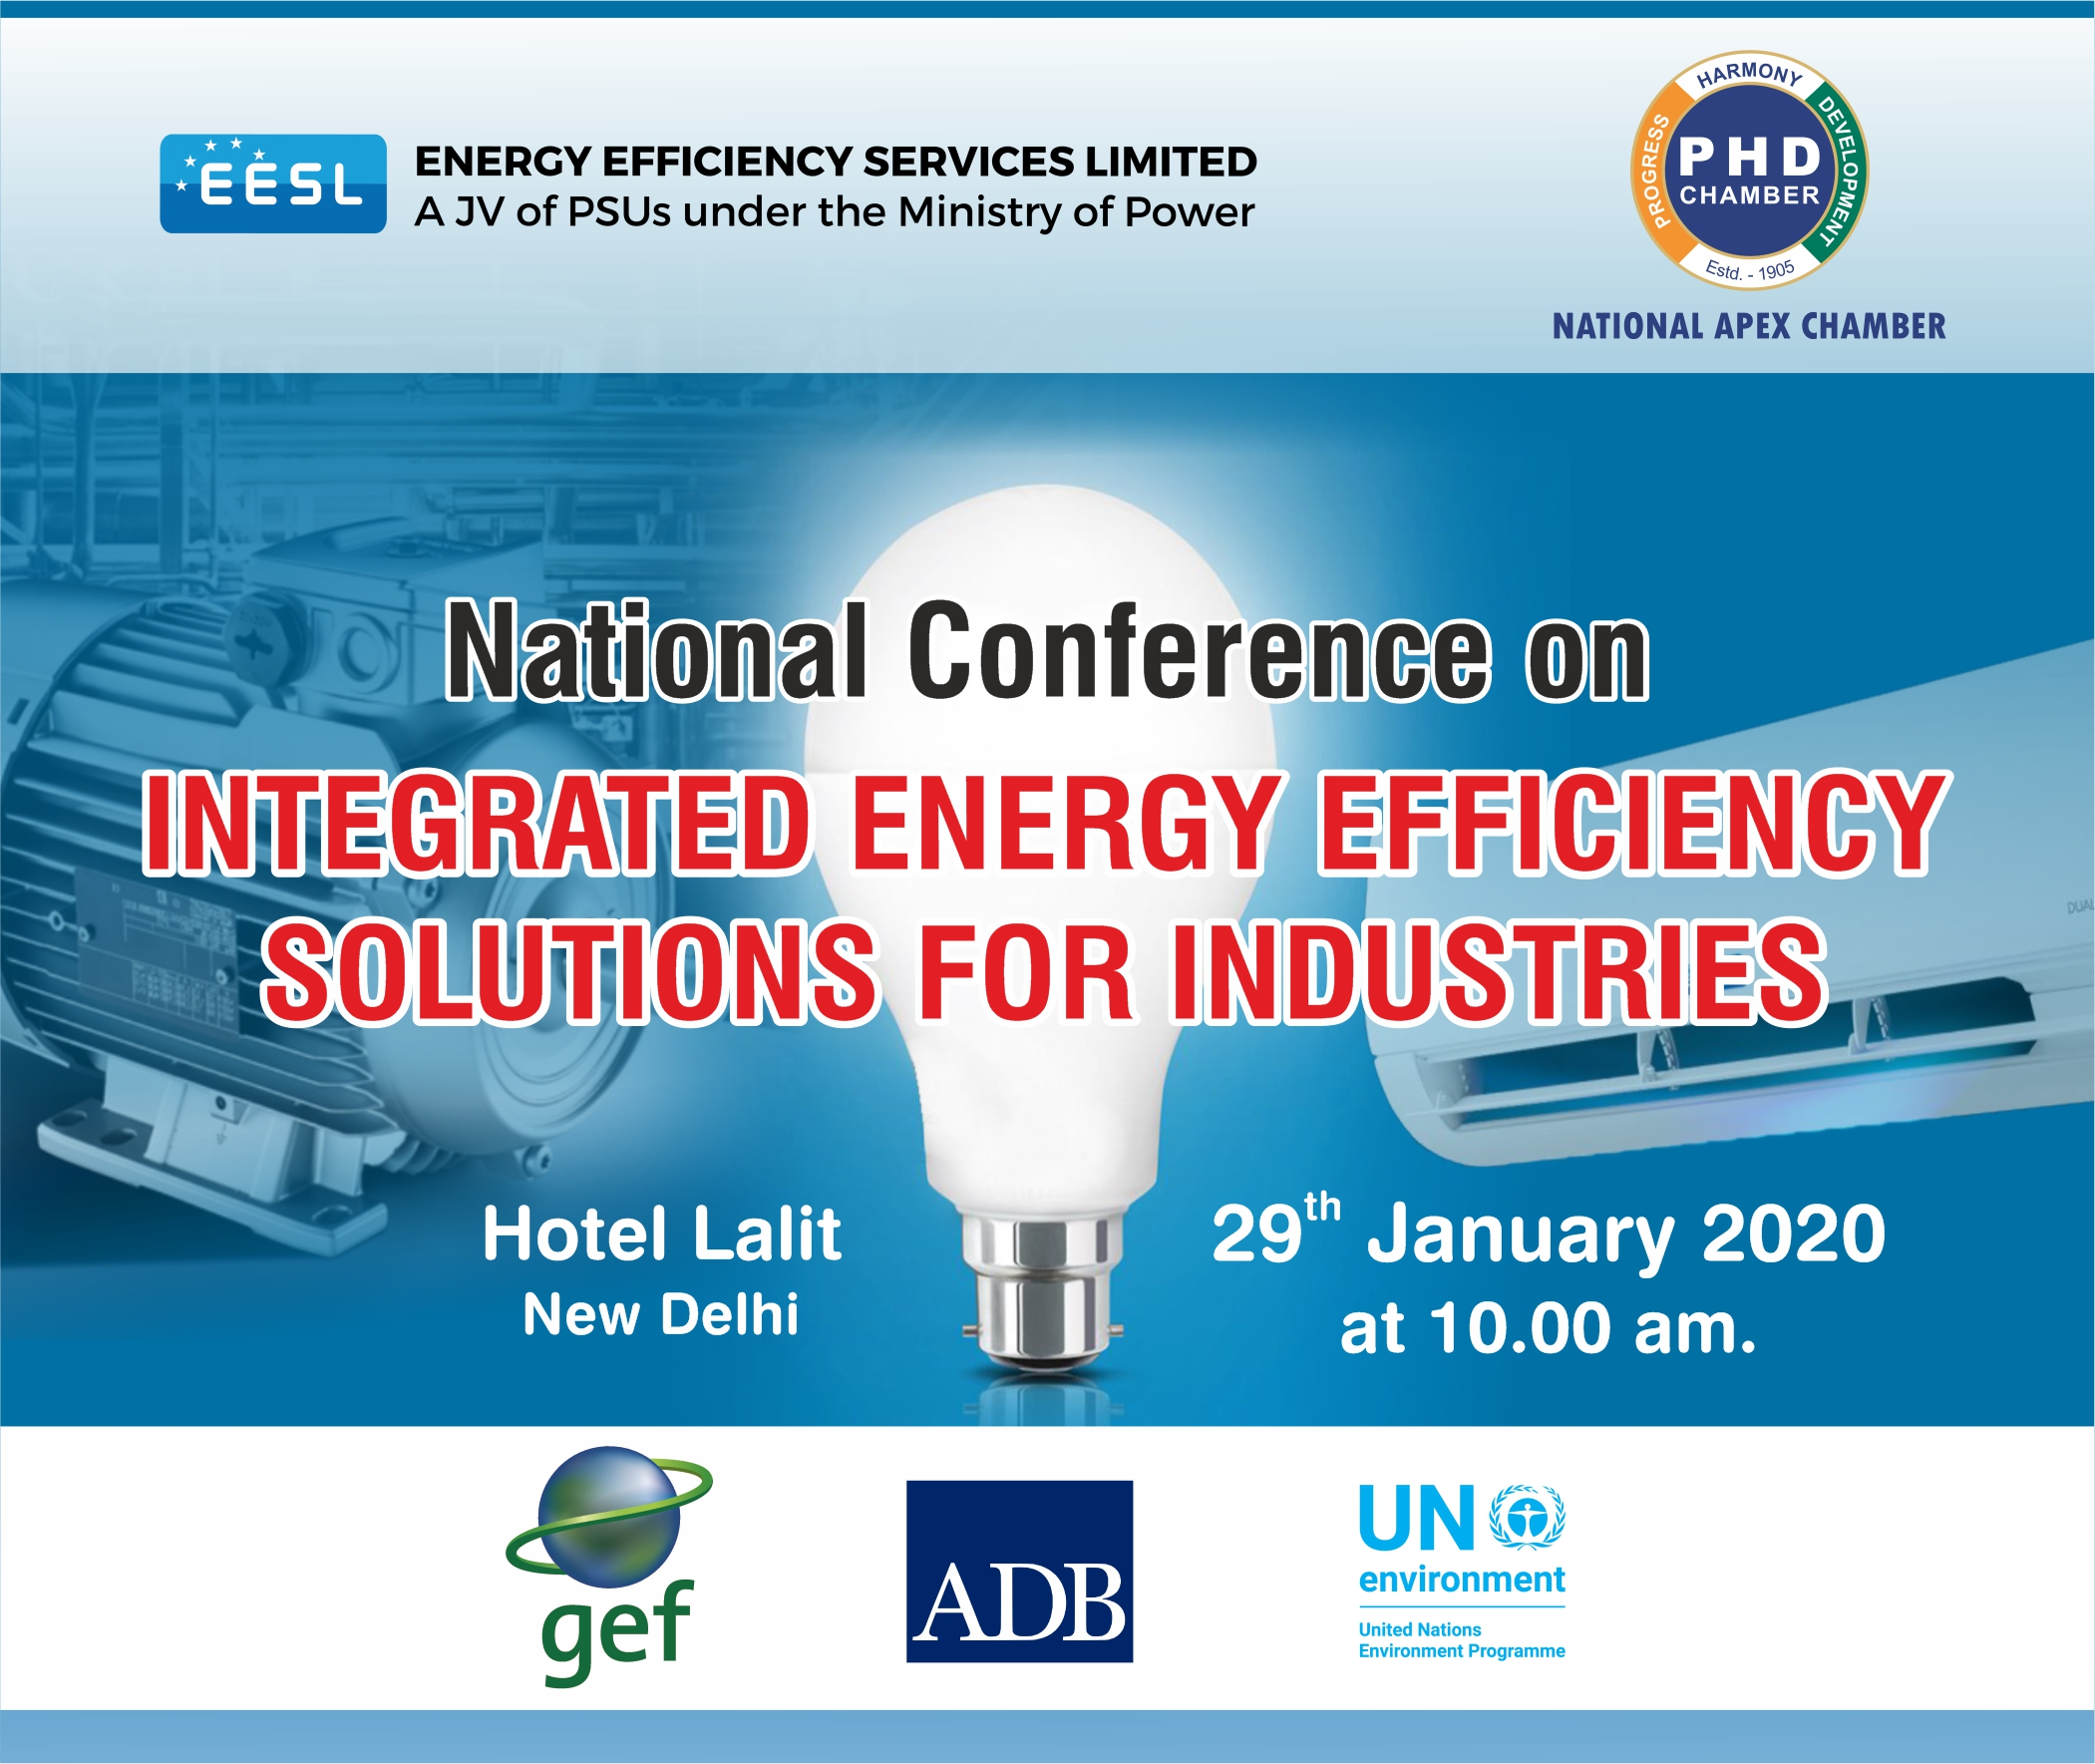 National Conference on Integrated Energy Efficiency Solutions for Industries